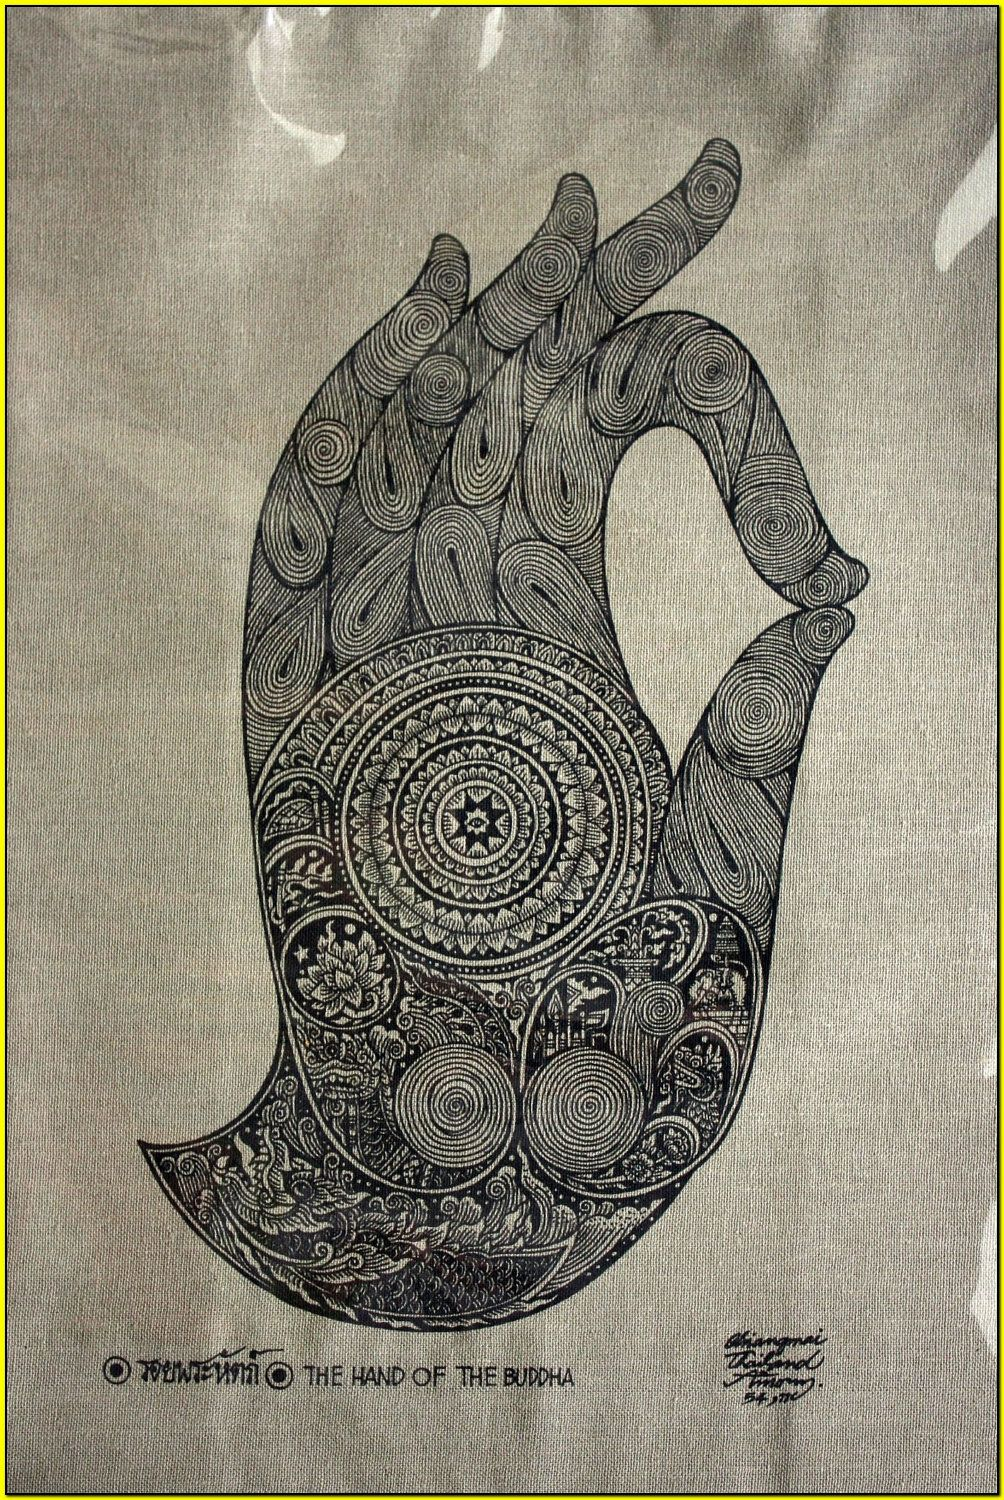 Thai traditional art of The Hand Of The Buddha by ...